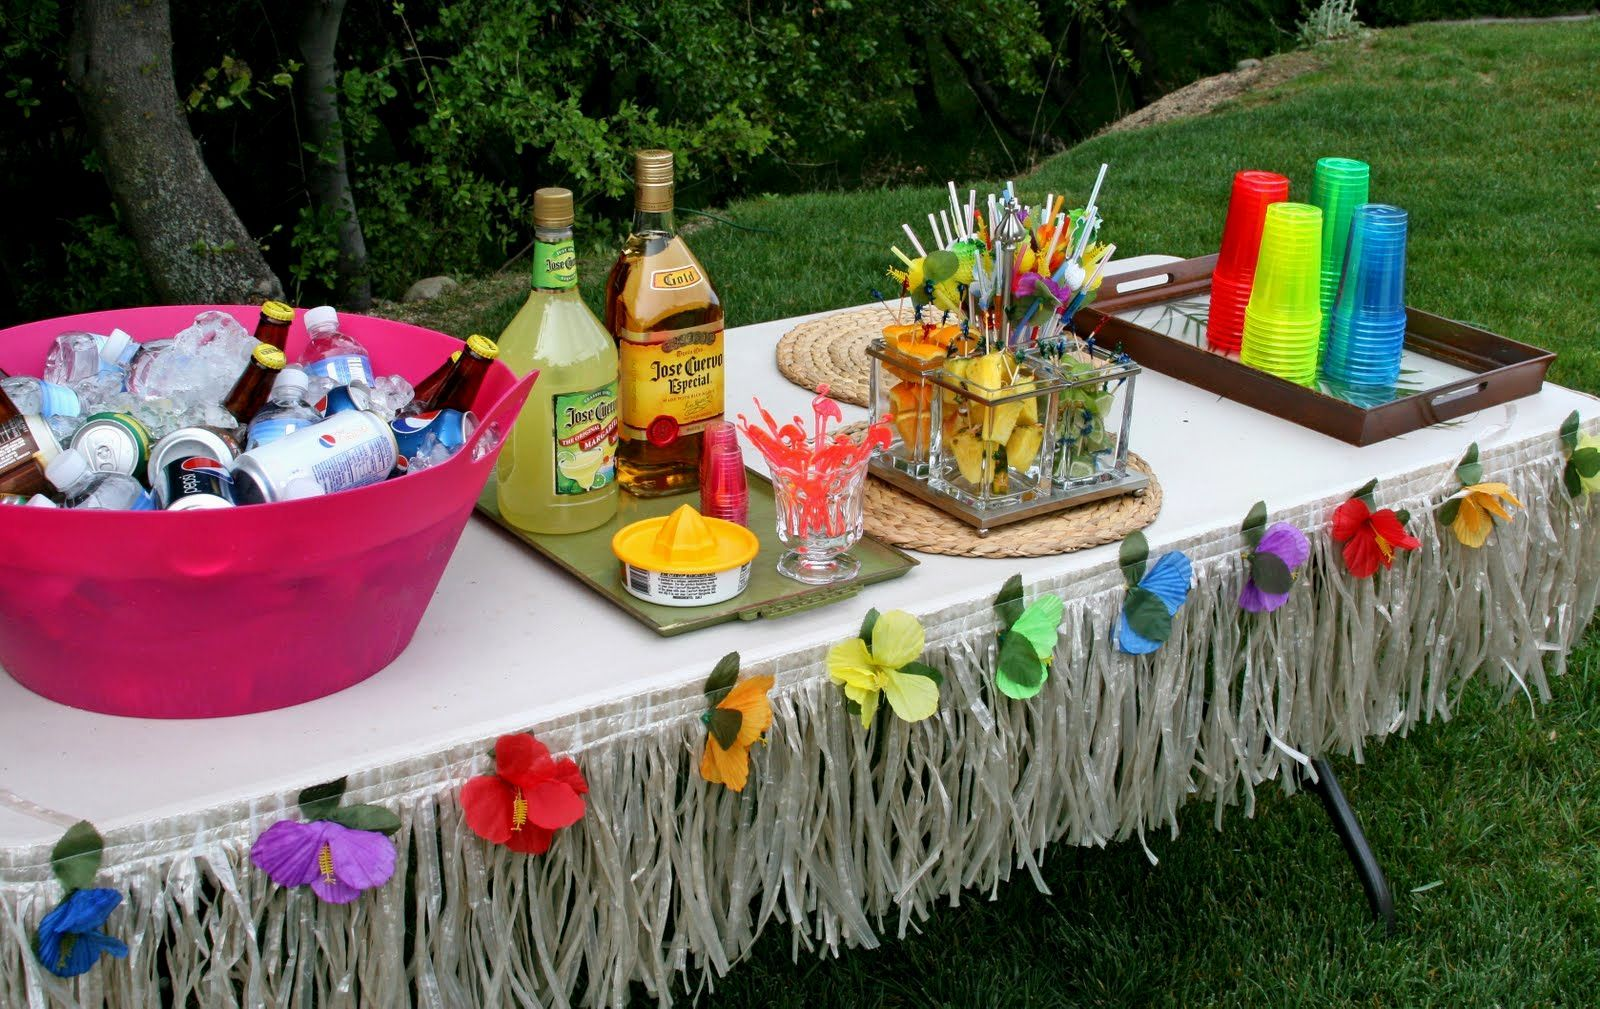 Caribbean Party Tips Theme Parties N More: Hawaiian-themed-party-ideas-island-themed-party-ideas.jpg